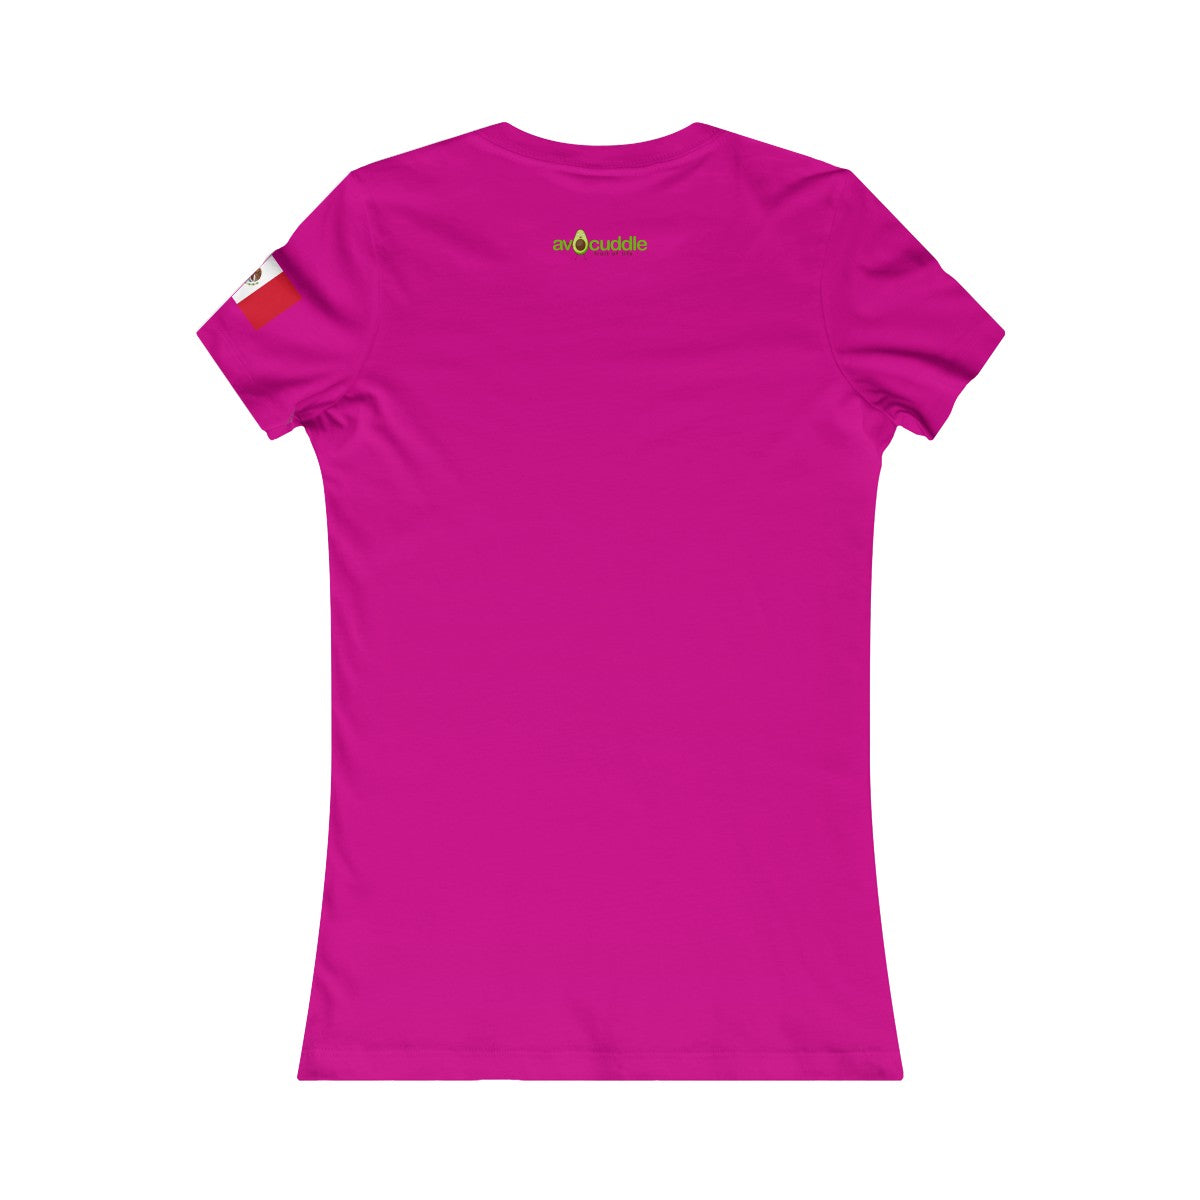 Avoletics Mexico Women's Favorite Tee